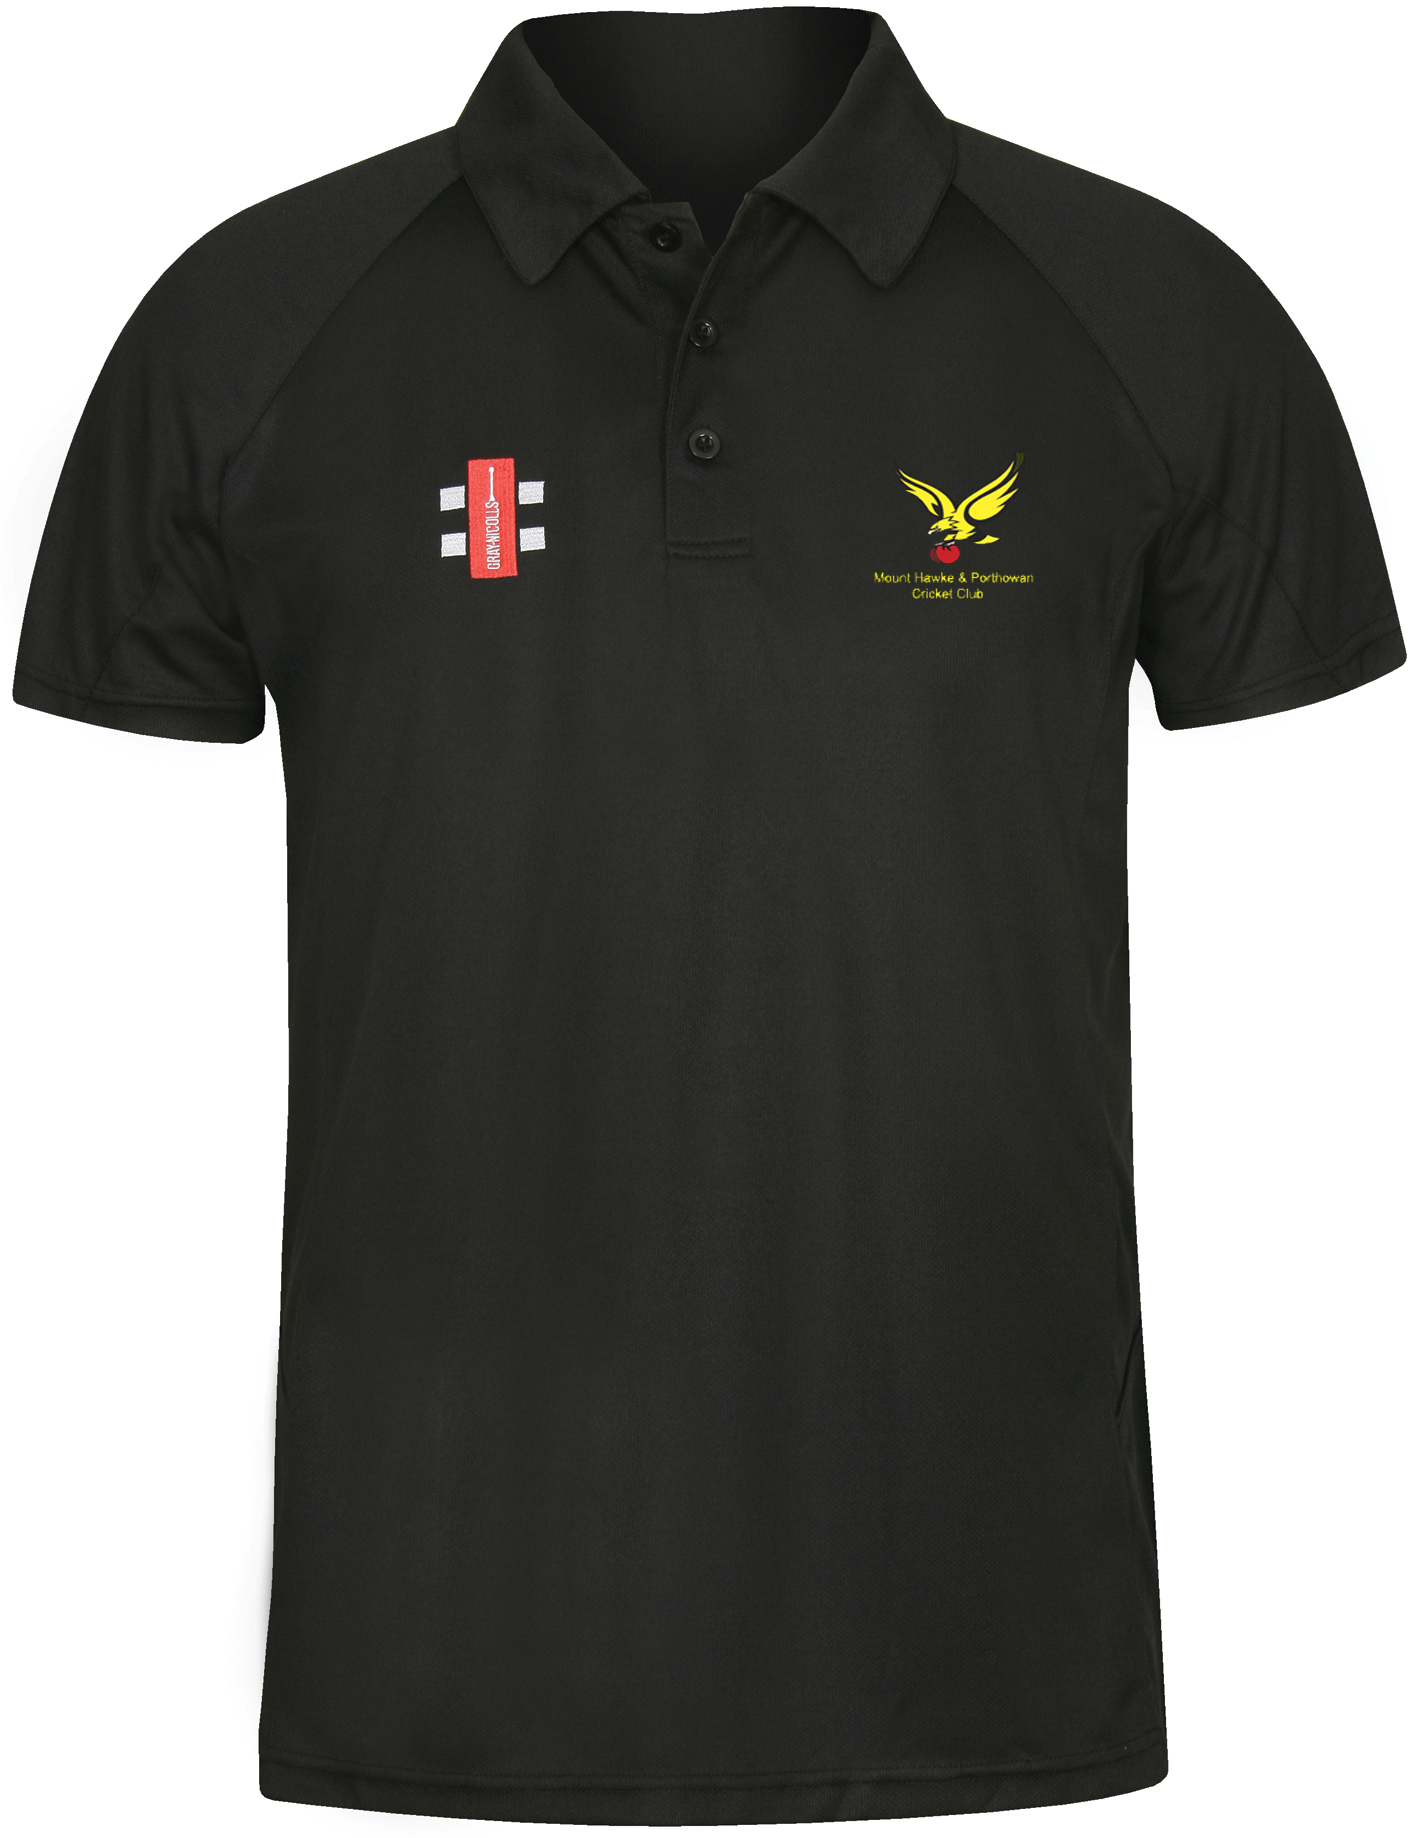 Gray Nicholls Polo Shirt